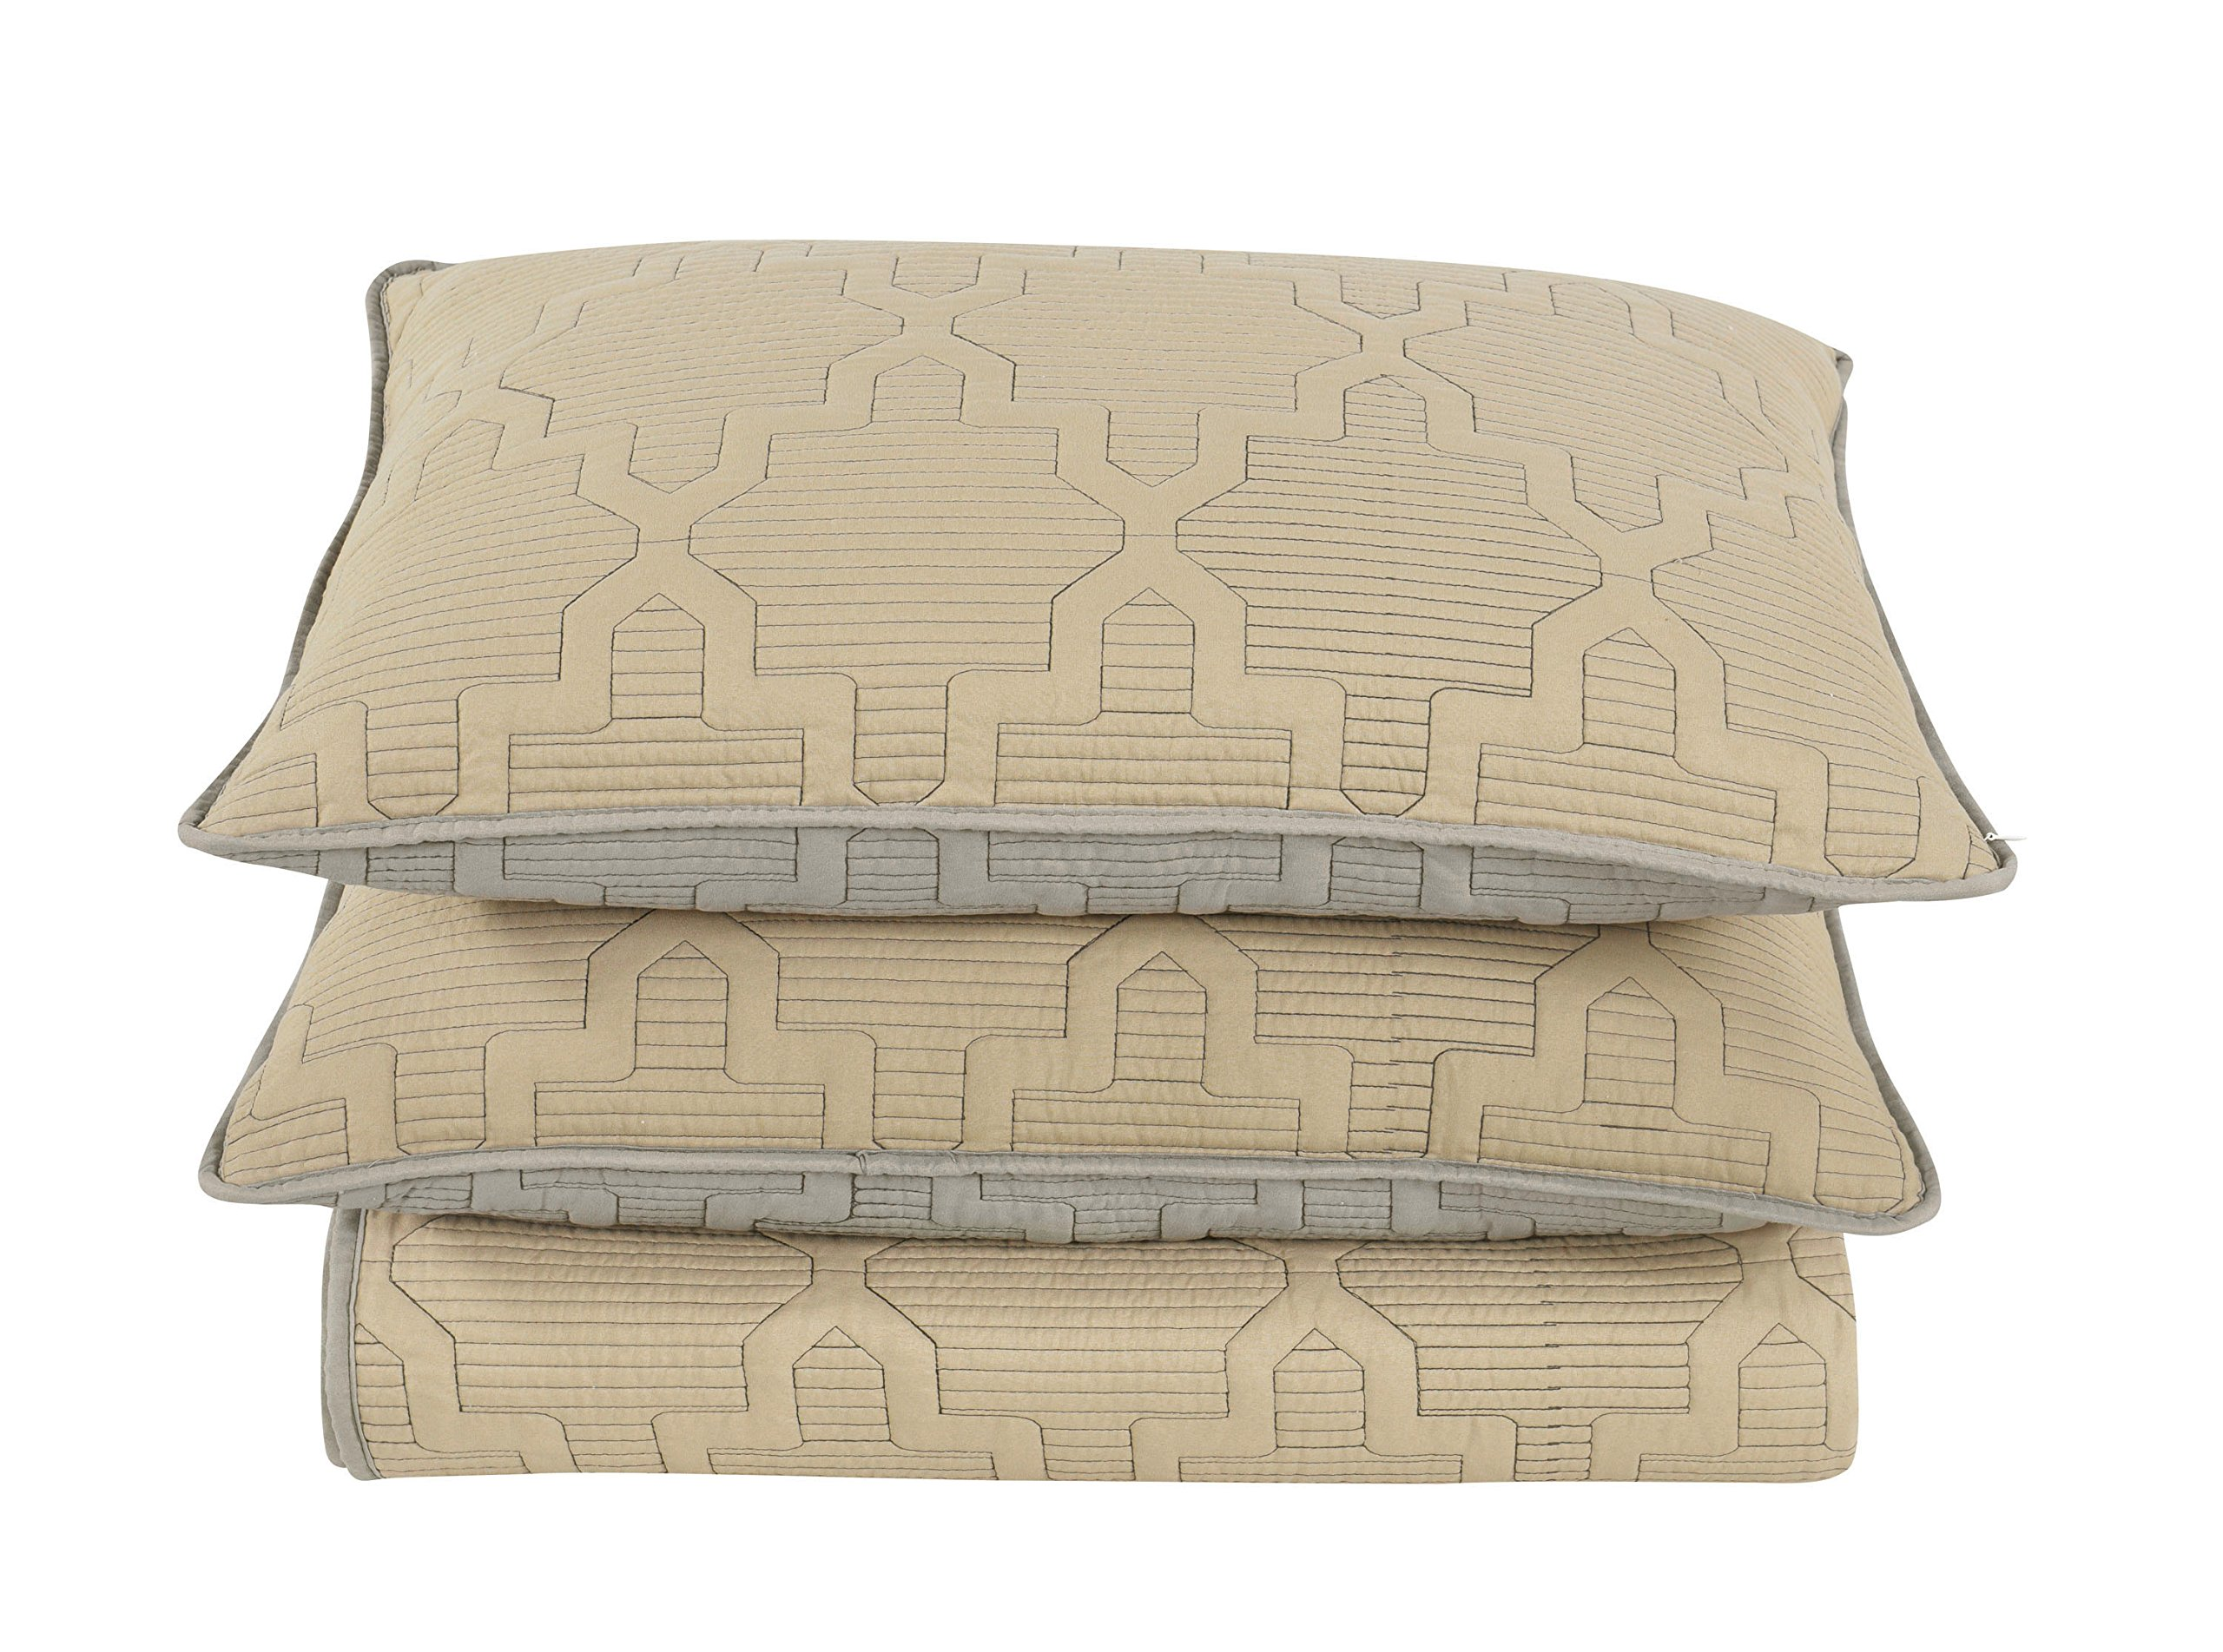 Brielle Casablanca, Reversible  Quilt Set, Twin, Grey/Linen - LinensNow and Amazon are the only authorized sellers of Brille Home products on this site. Please avoid other sellers for the GENUINE article. True reversible- elegant embroidery design on both sides Twin quilt measures 68 by 86 inches; standard pillow sham measures 20 by 26 inches - living-room-soft-furnishings, living-room, decorative-pillows - 91OSuo1S12L -